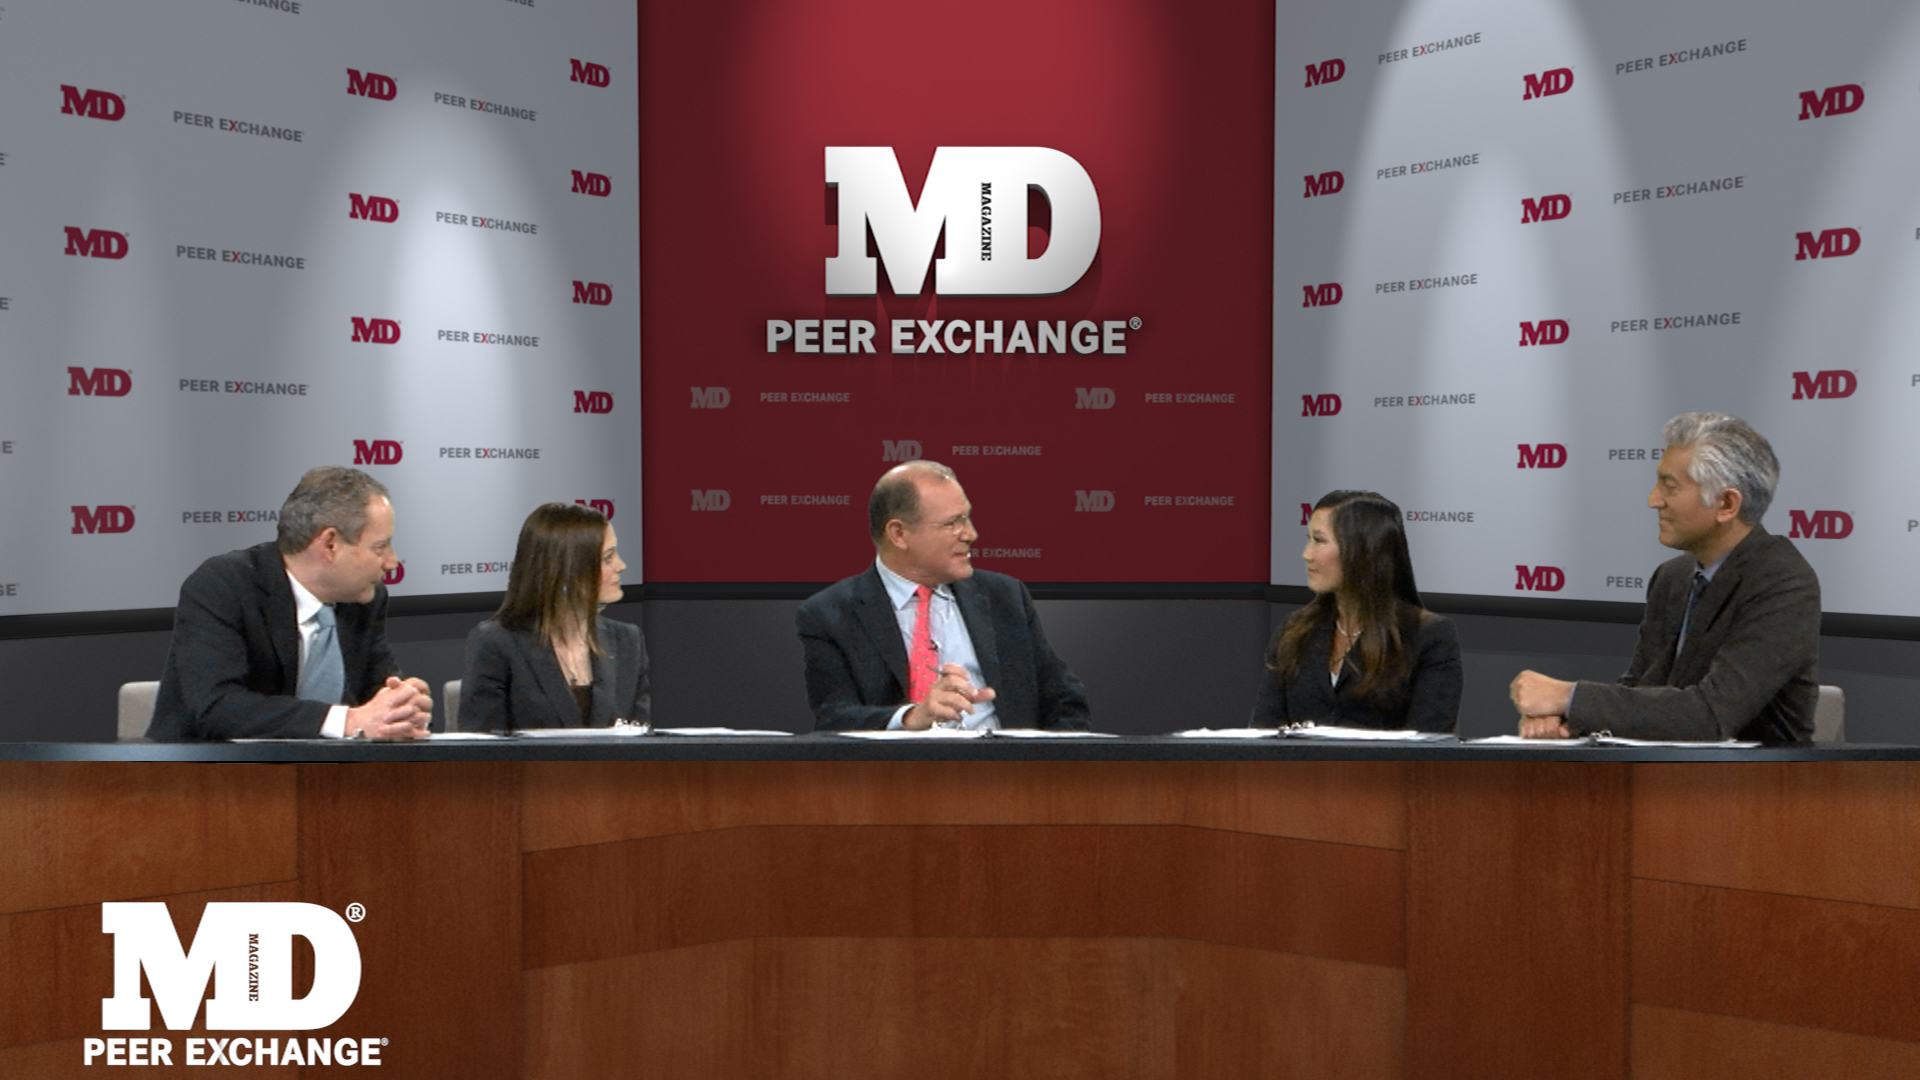 Stephen Krieger, MD, Talks Ocrelizumab in RRMS and PPMS Treatment